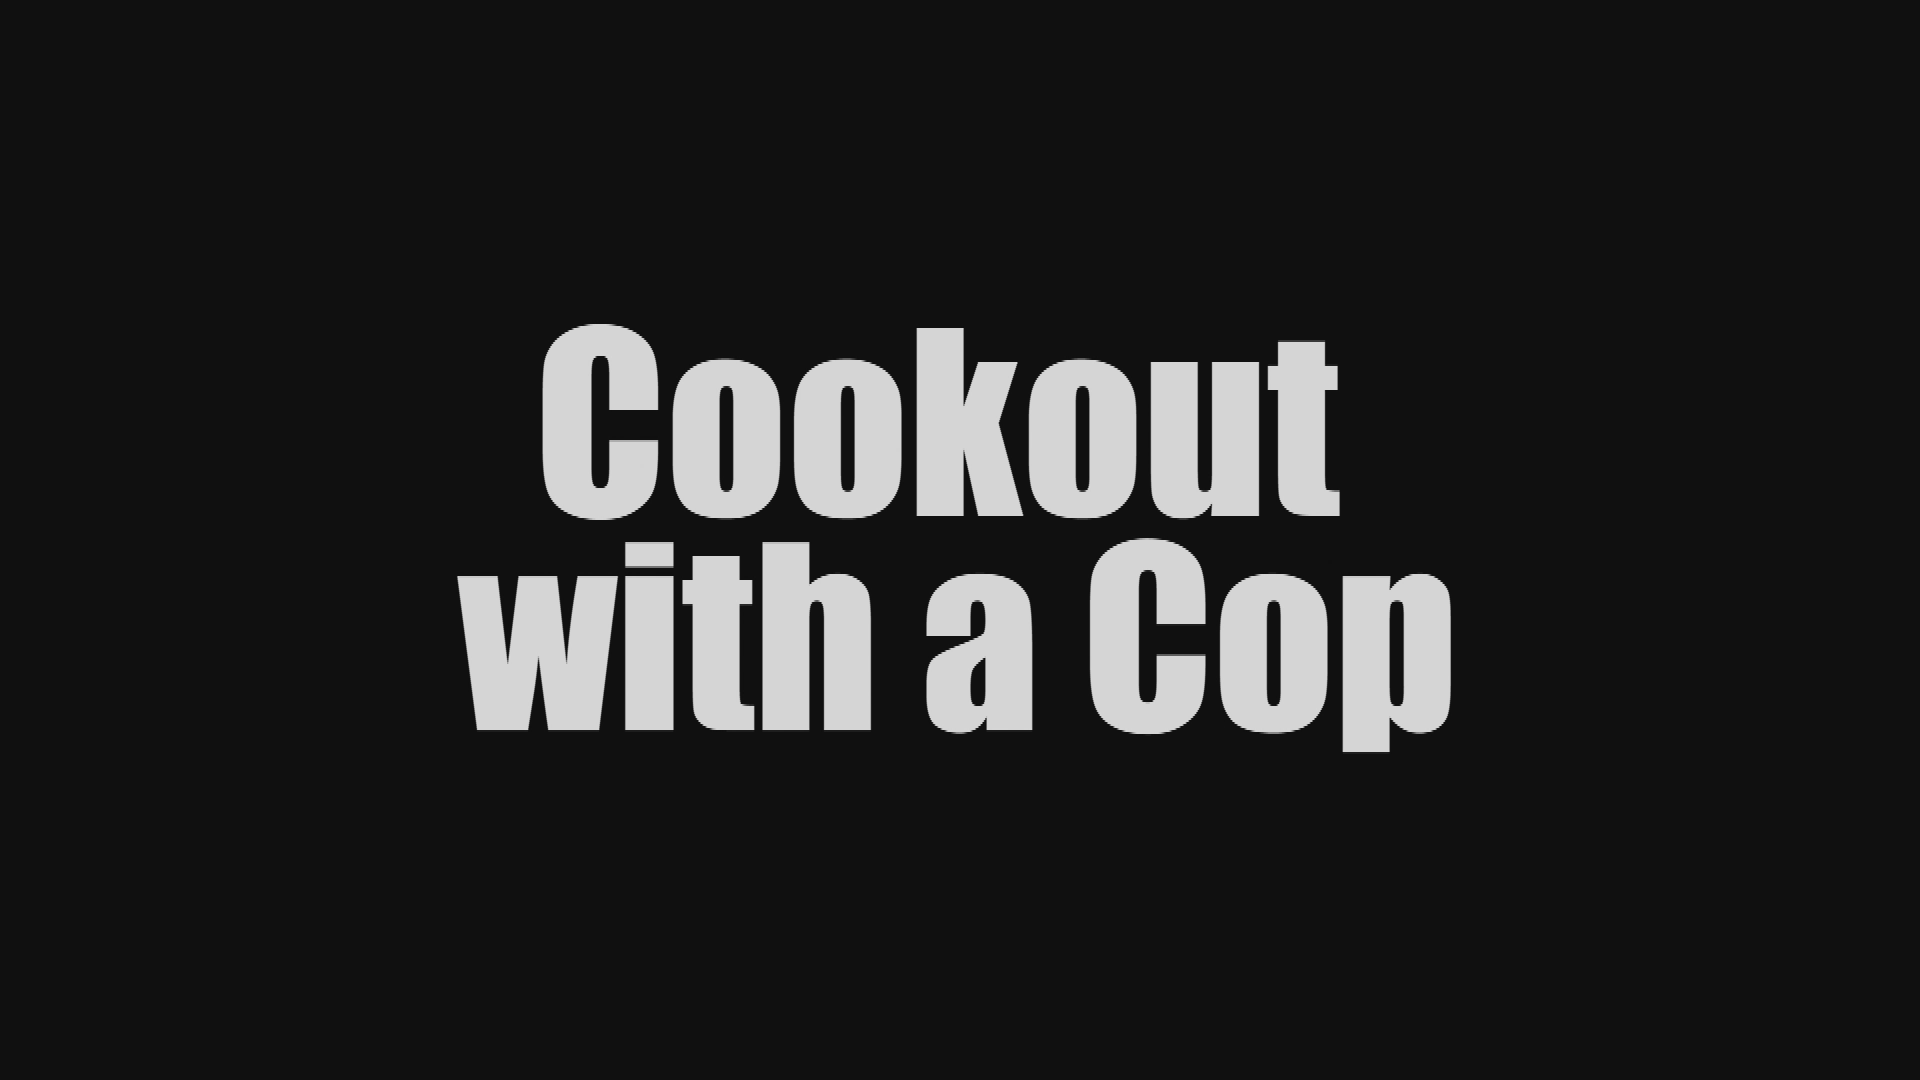 Cookout with a Cop 2017